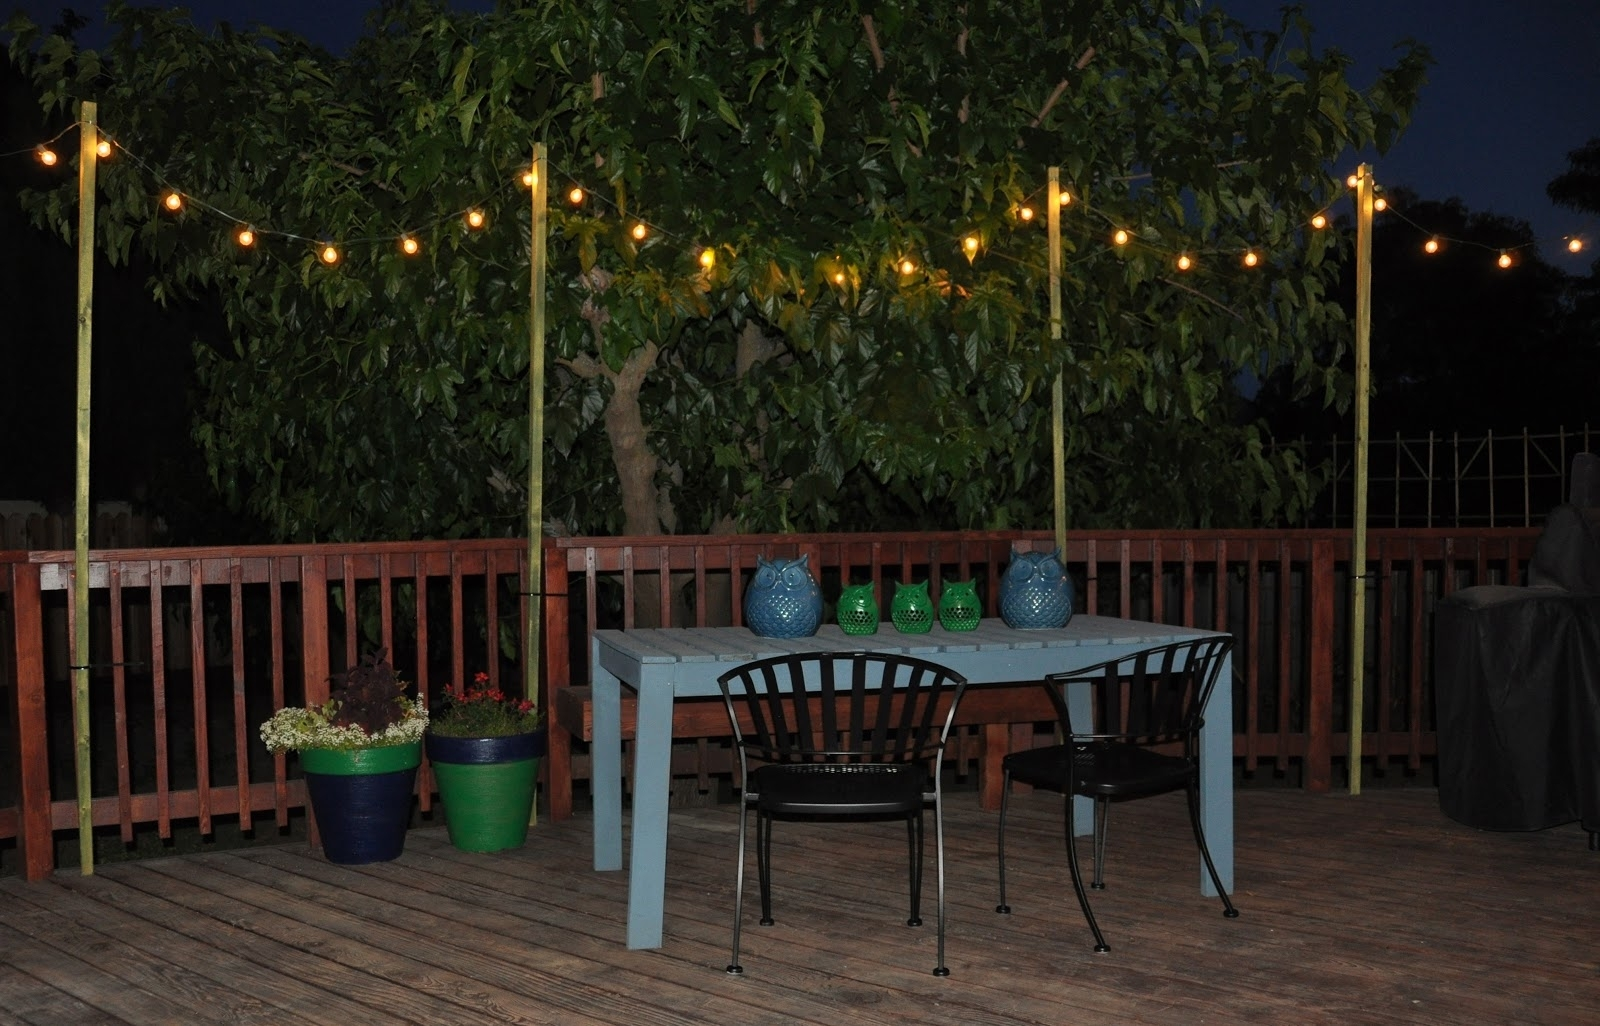 How To Hang String Lights Outsidehanging Outdoor Patio Lights On Throughout Hanging Outdoor Lights For A Party (#8 of 15)